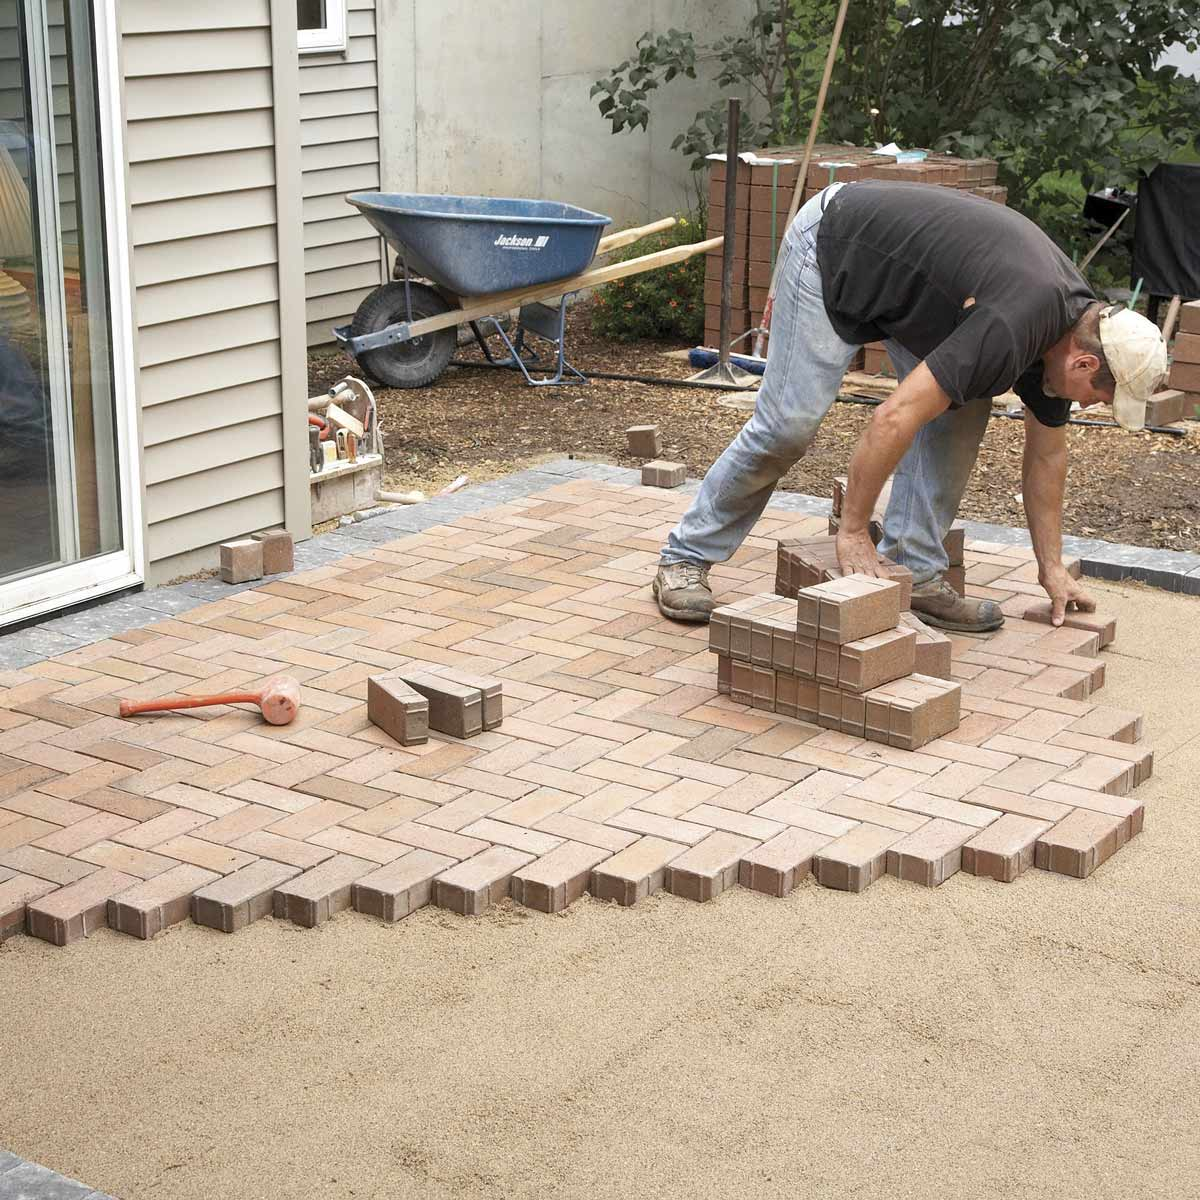 Pavers-Mesquite TX Professional Landscapers & Outdoor Living Designs-We offer Landscape Design, Outdoor Patios & Pergolas, Outdoor Living Spaces, Stonescapes, Residential & Commercial Landscaping, Irrigation Installation & Repairs, Drainage Systems, Landscape Lighting, Outdoor Living Spaces, Tree Service, Lawn Service, and more.